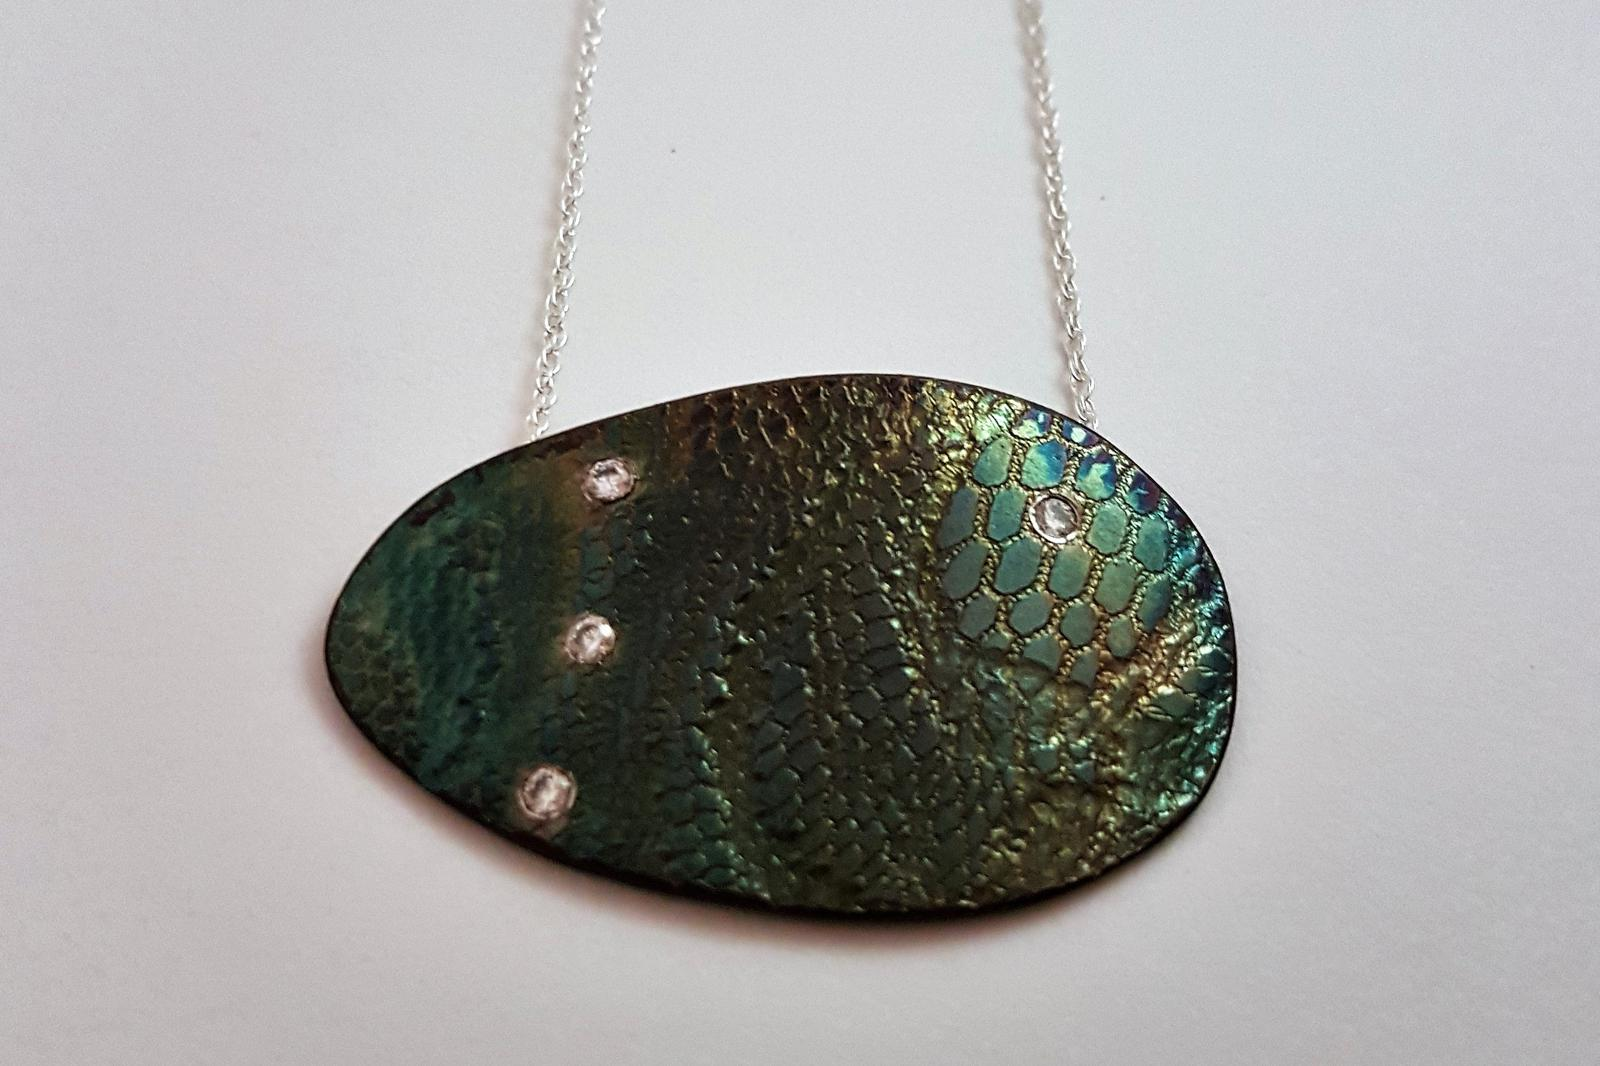 Oxidised Sterling Silver Lace Pendant